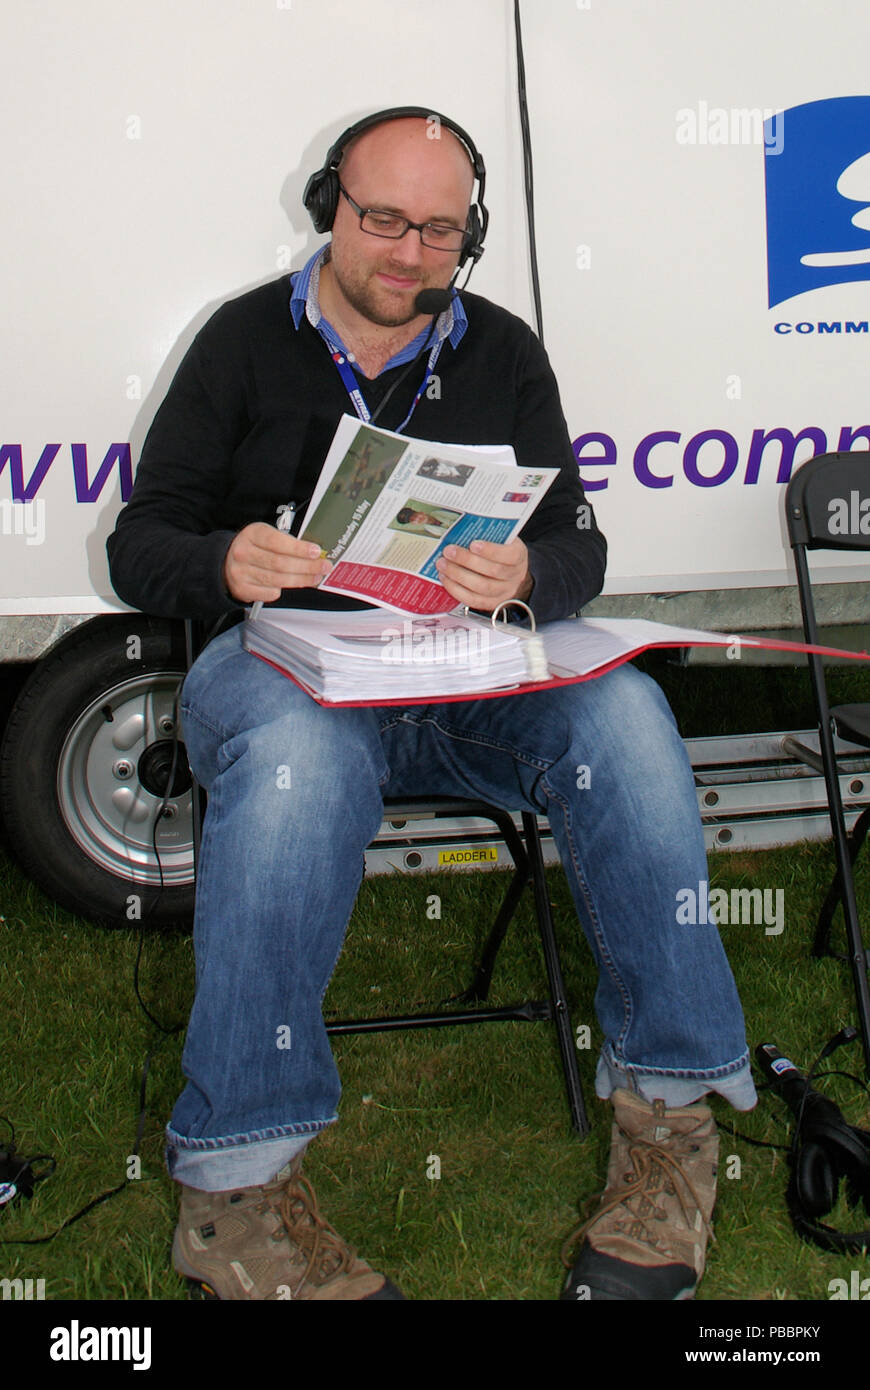 Ben Dunnell, aviation journalist and airshow commentator with notes. Air show - Stock Image